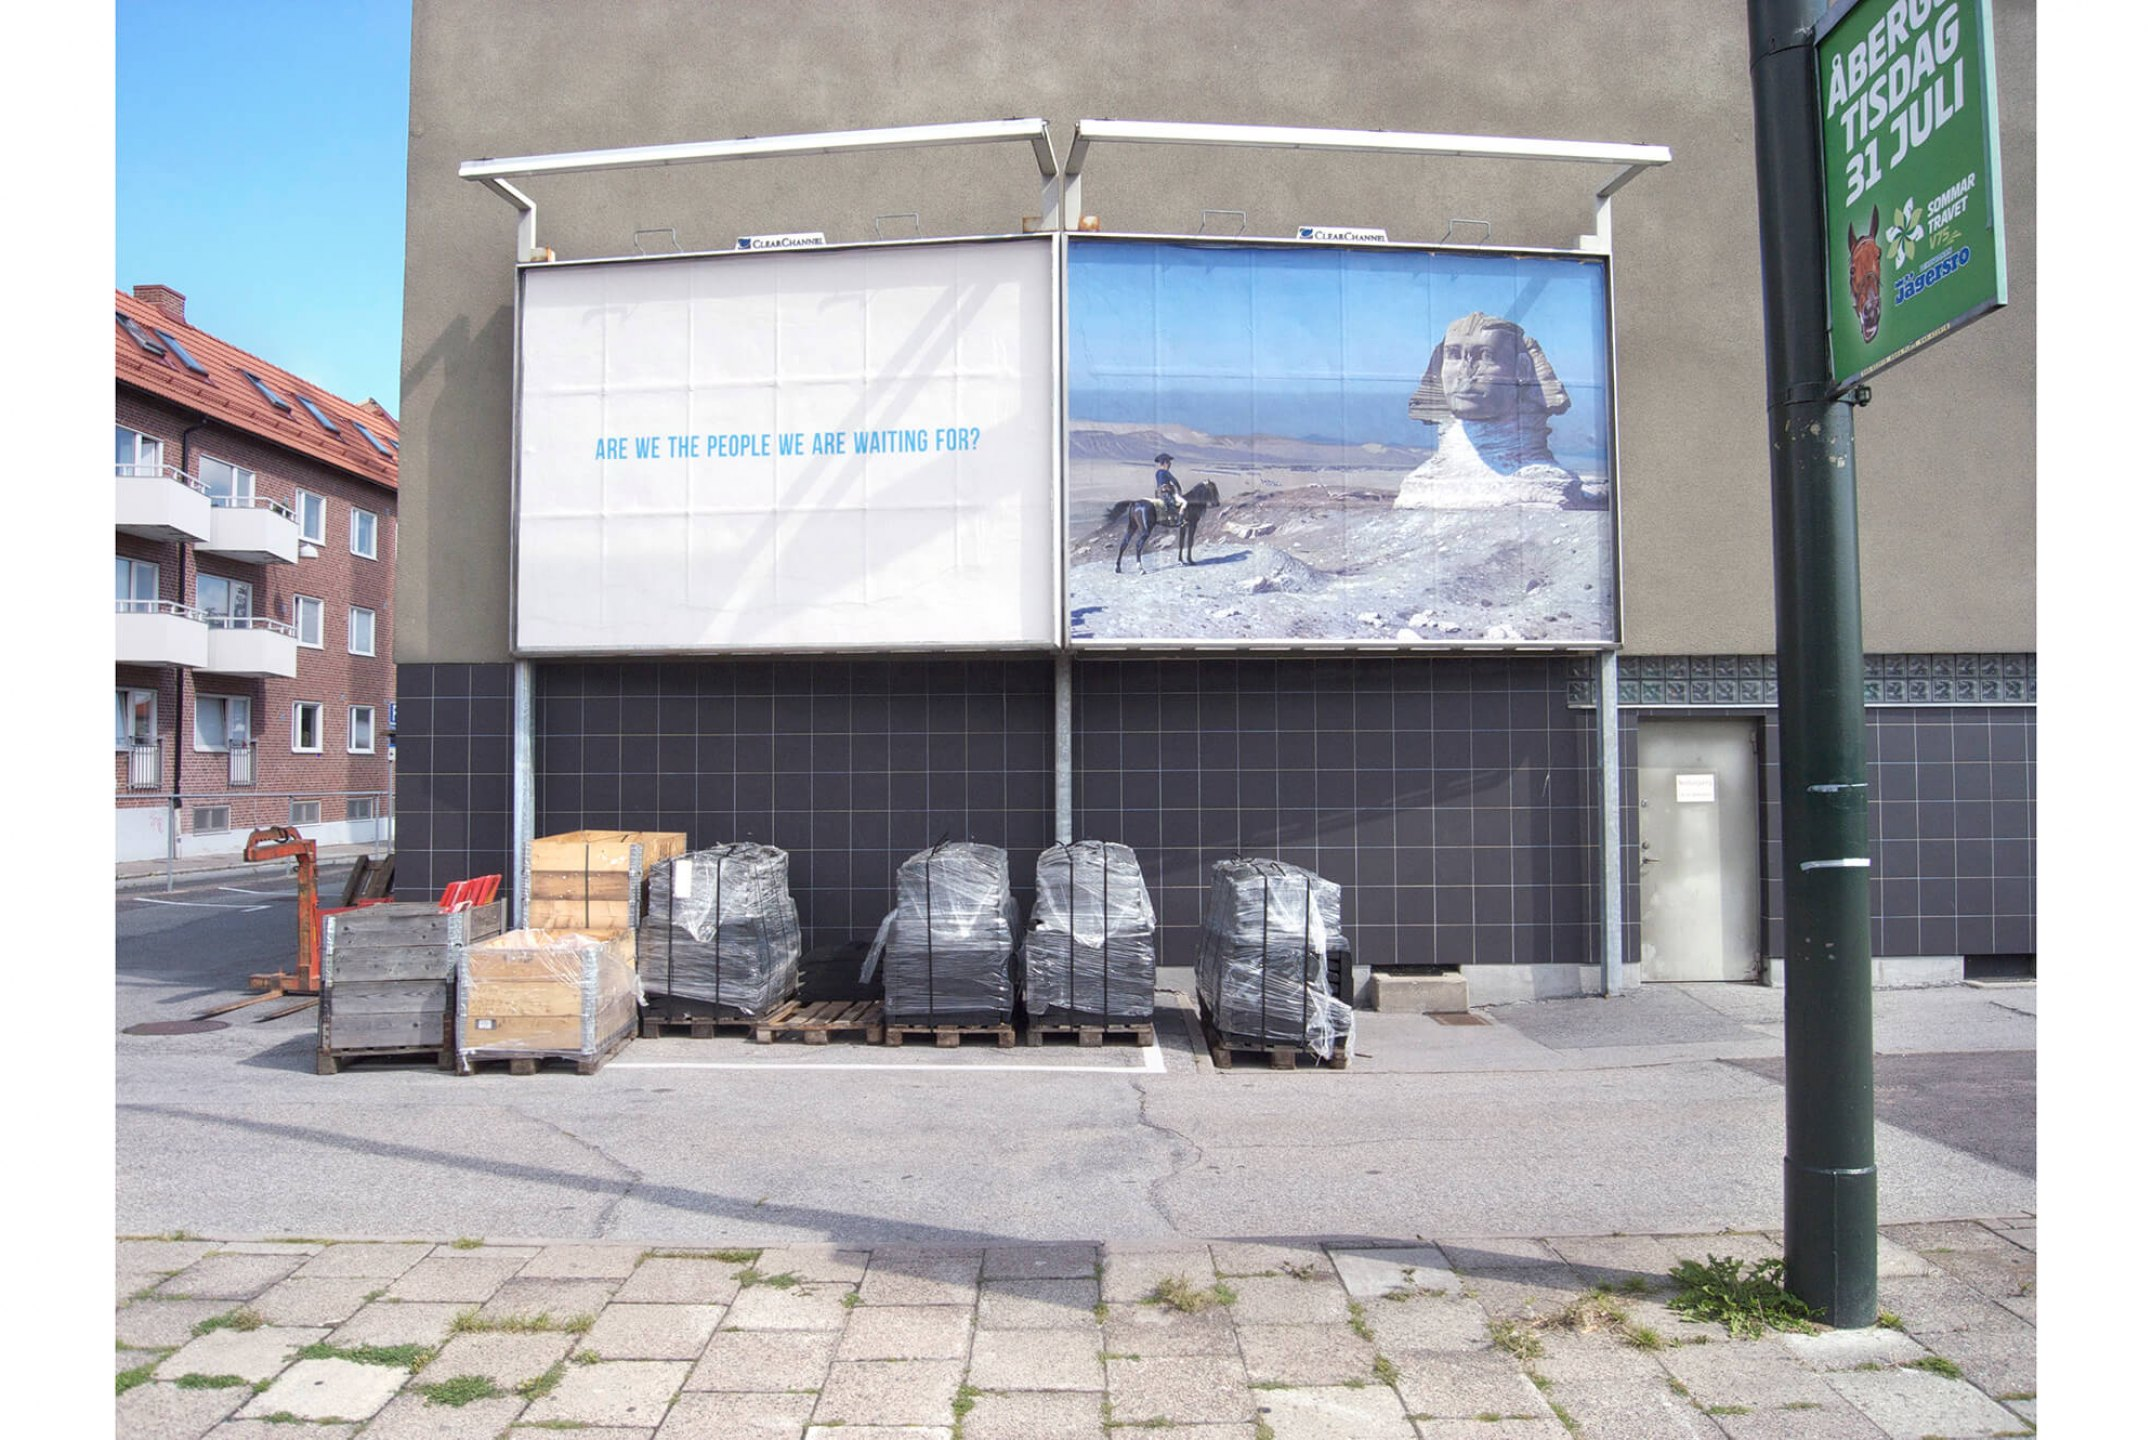 Runo Lagomarsino, <em>Are  We the People We Are Waiting for?, 2012,</em>Billboards, Malmö - Mendes Wood DM